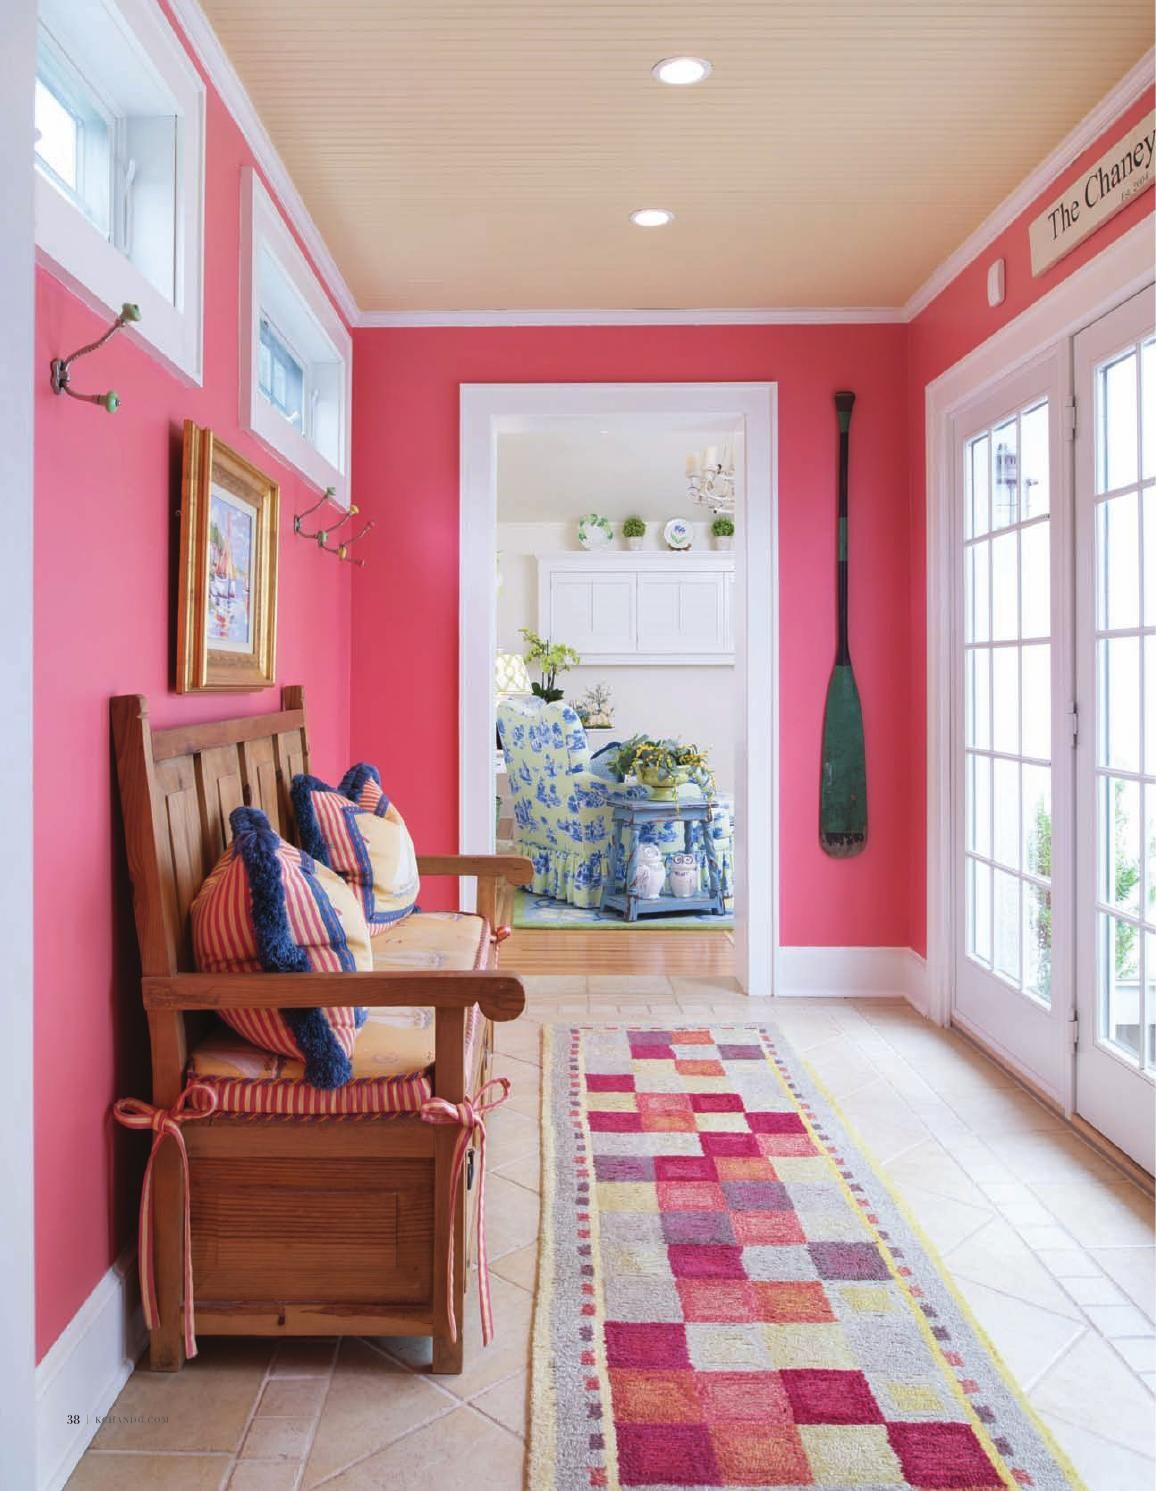 Kansas City Homes & Gardens | Decoration - Color and Rooms ...